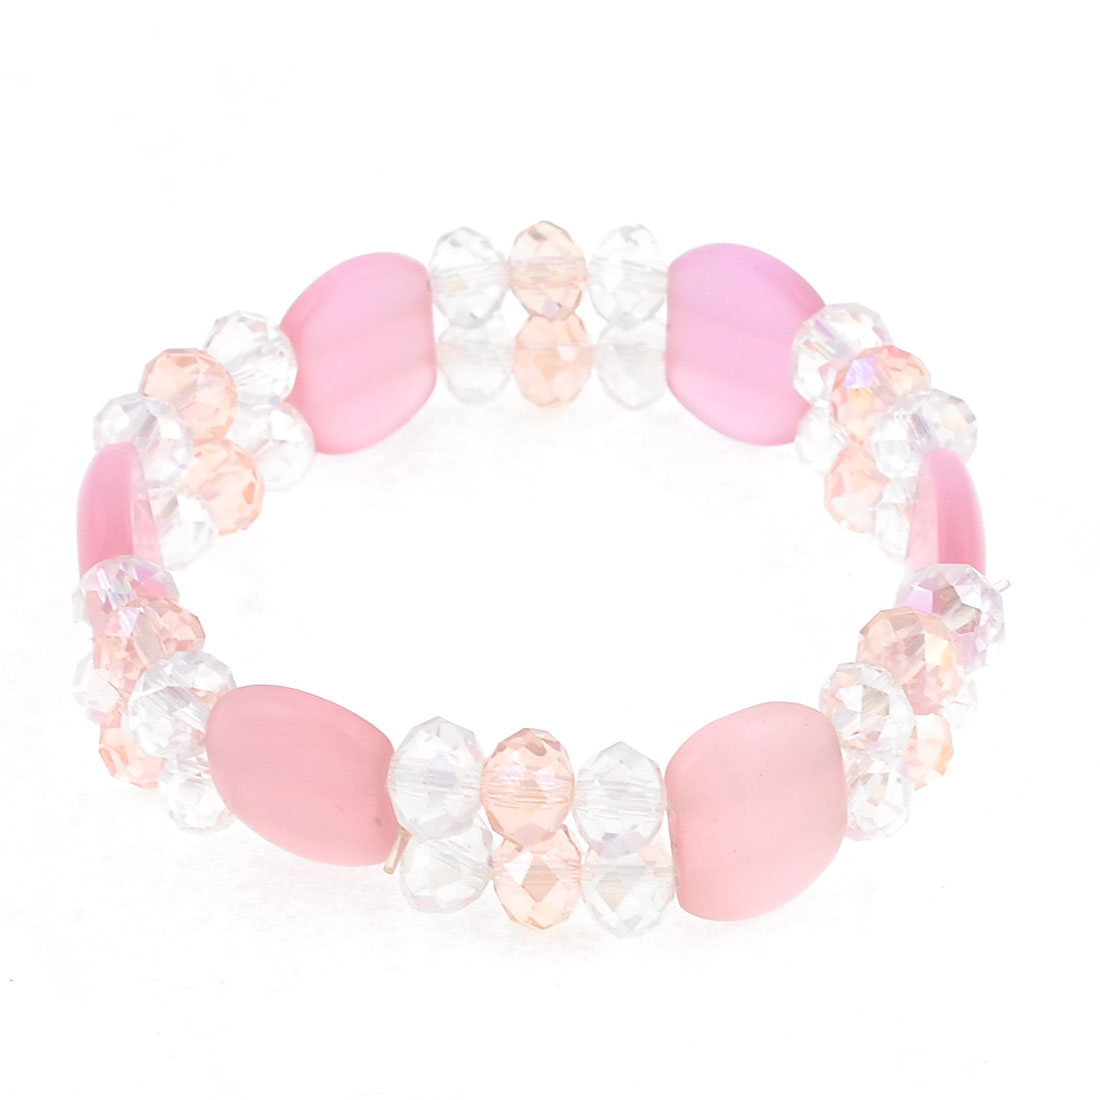 Stretchy Double Layers Beaded Crystal Bracelet Wrist Ornament Pink Clear